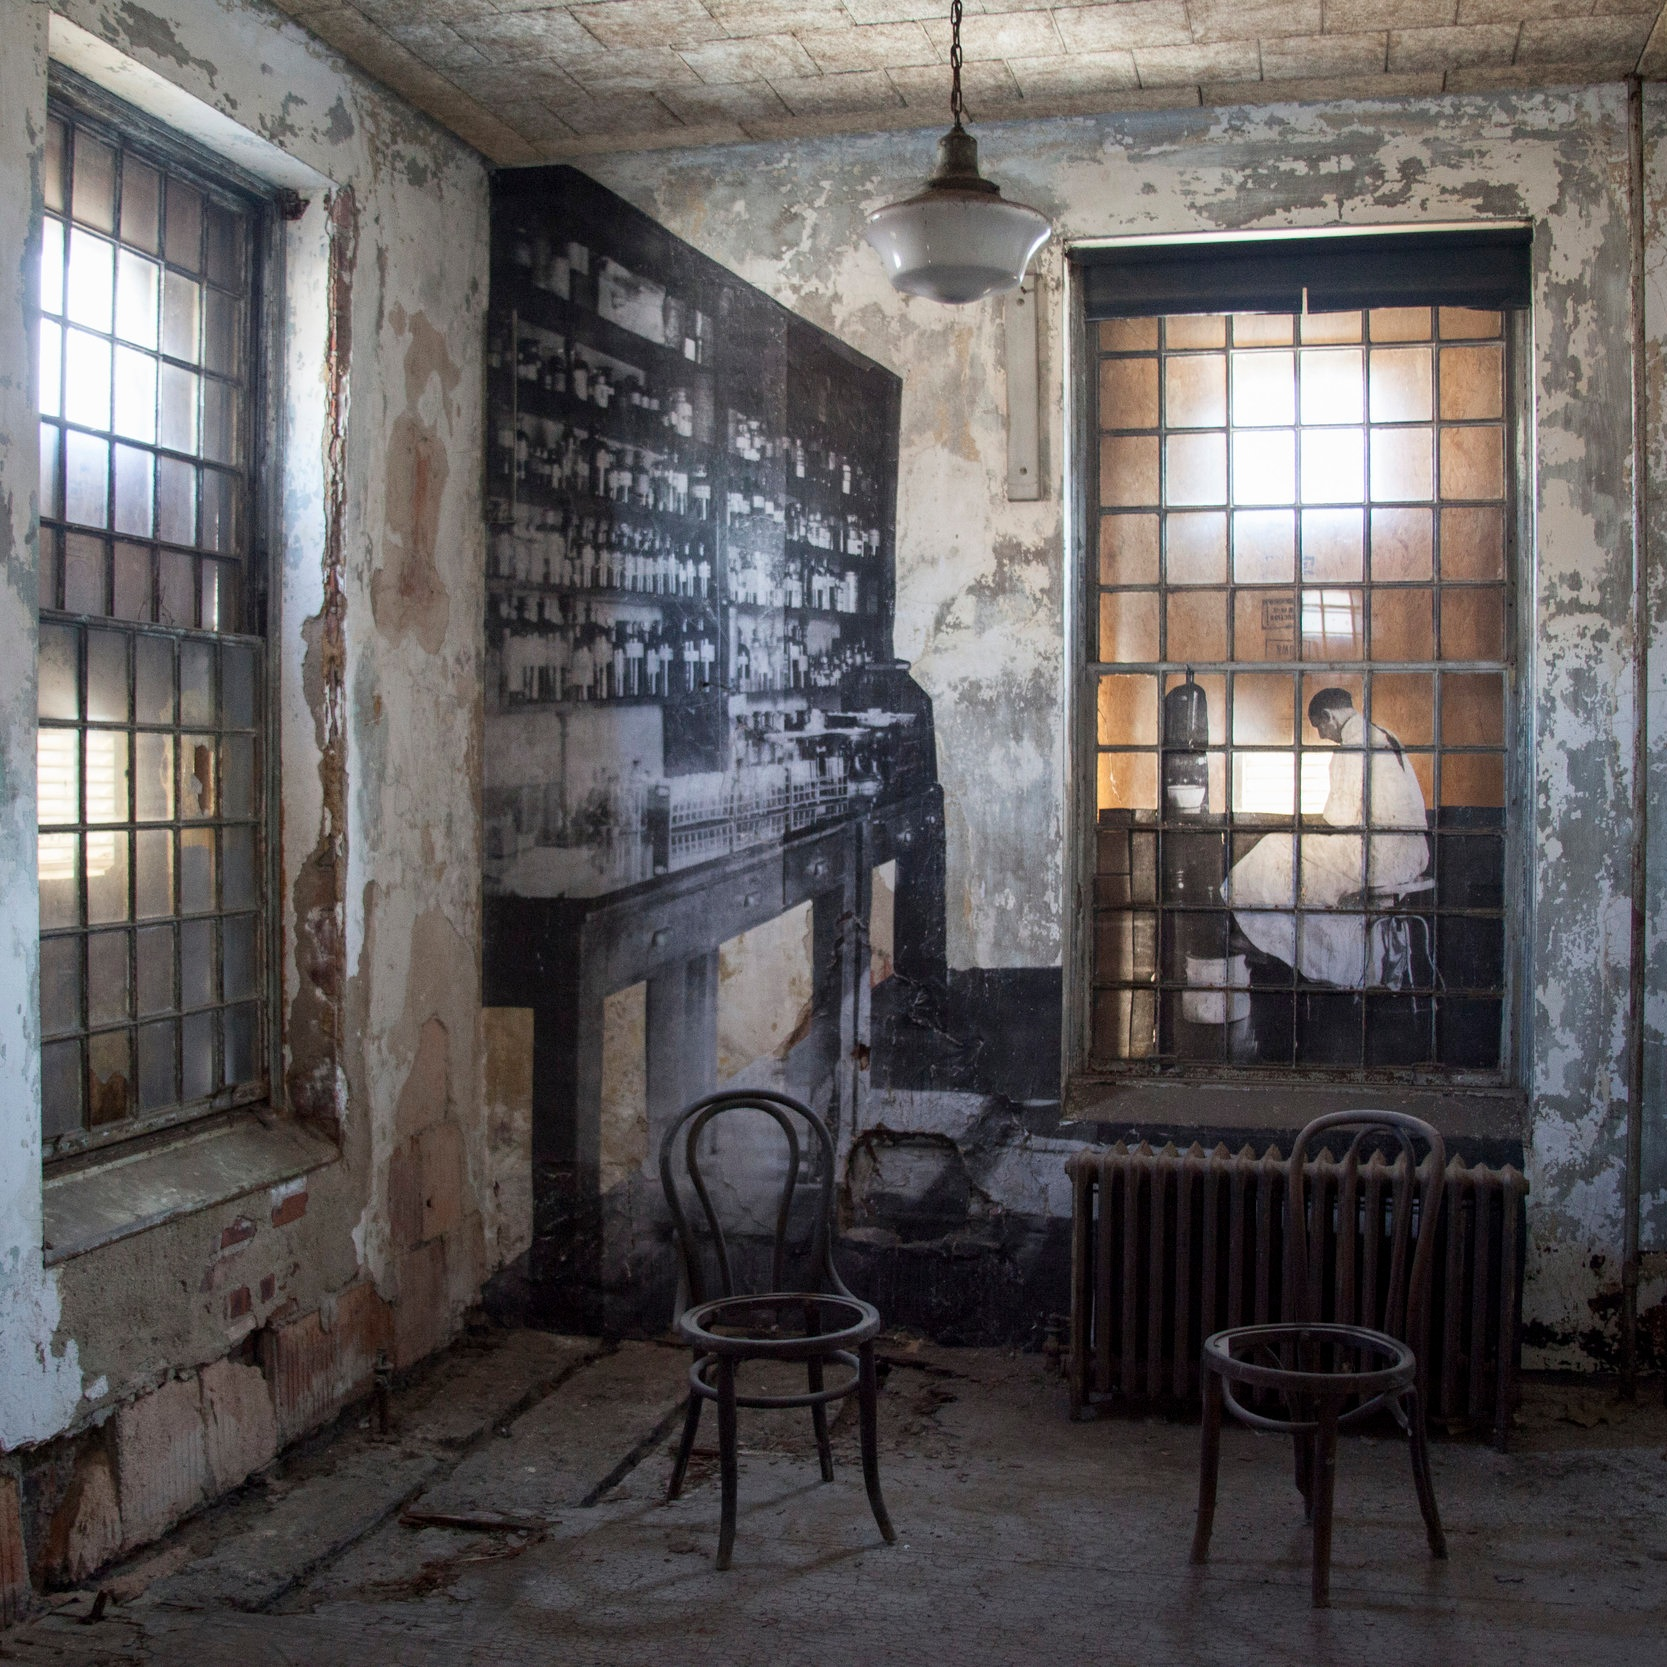 Ellis Island_Abandoned Hospitals_Behind the Scenes Tour_Untapped Cities_NYC_4.jpg